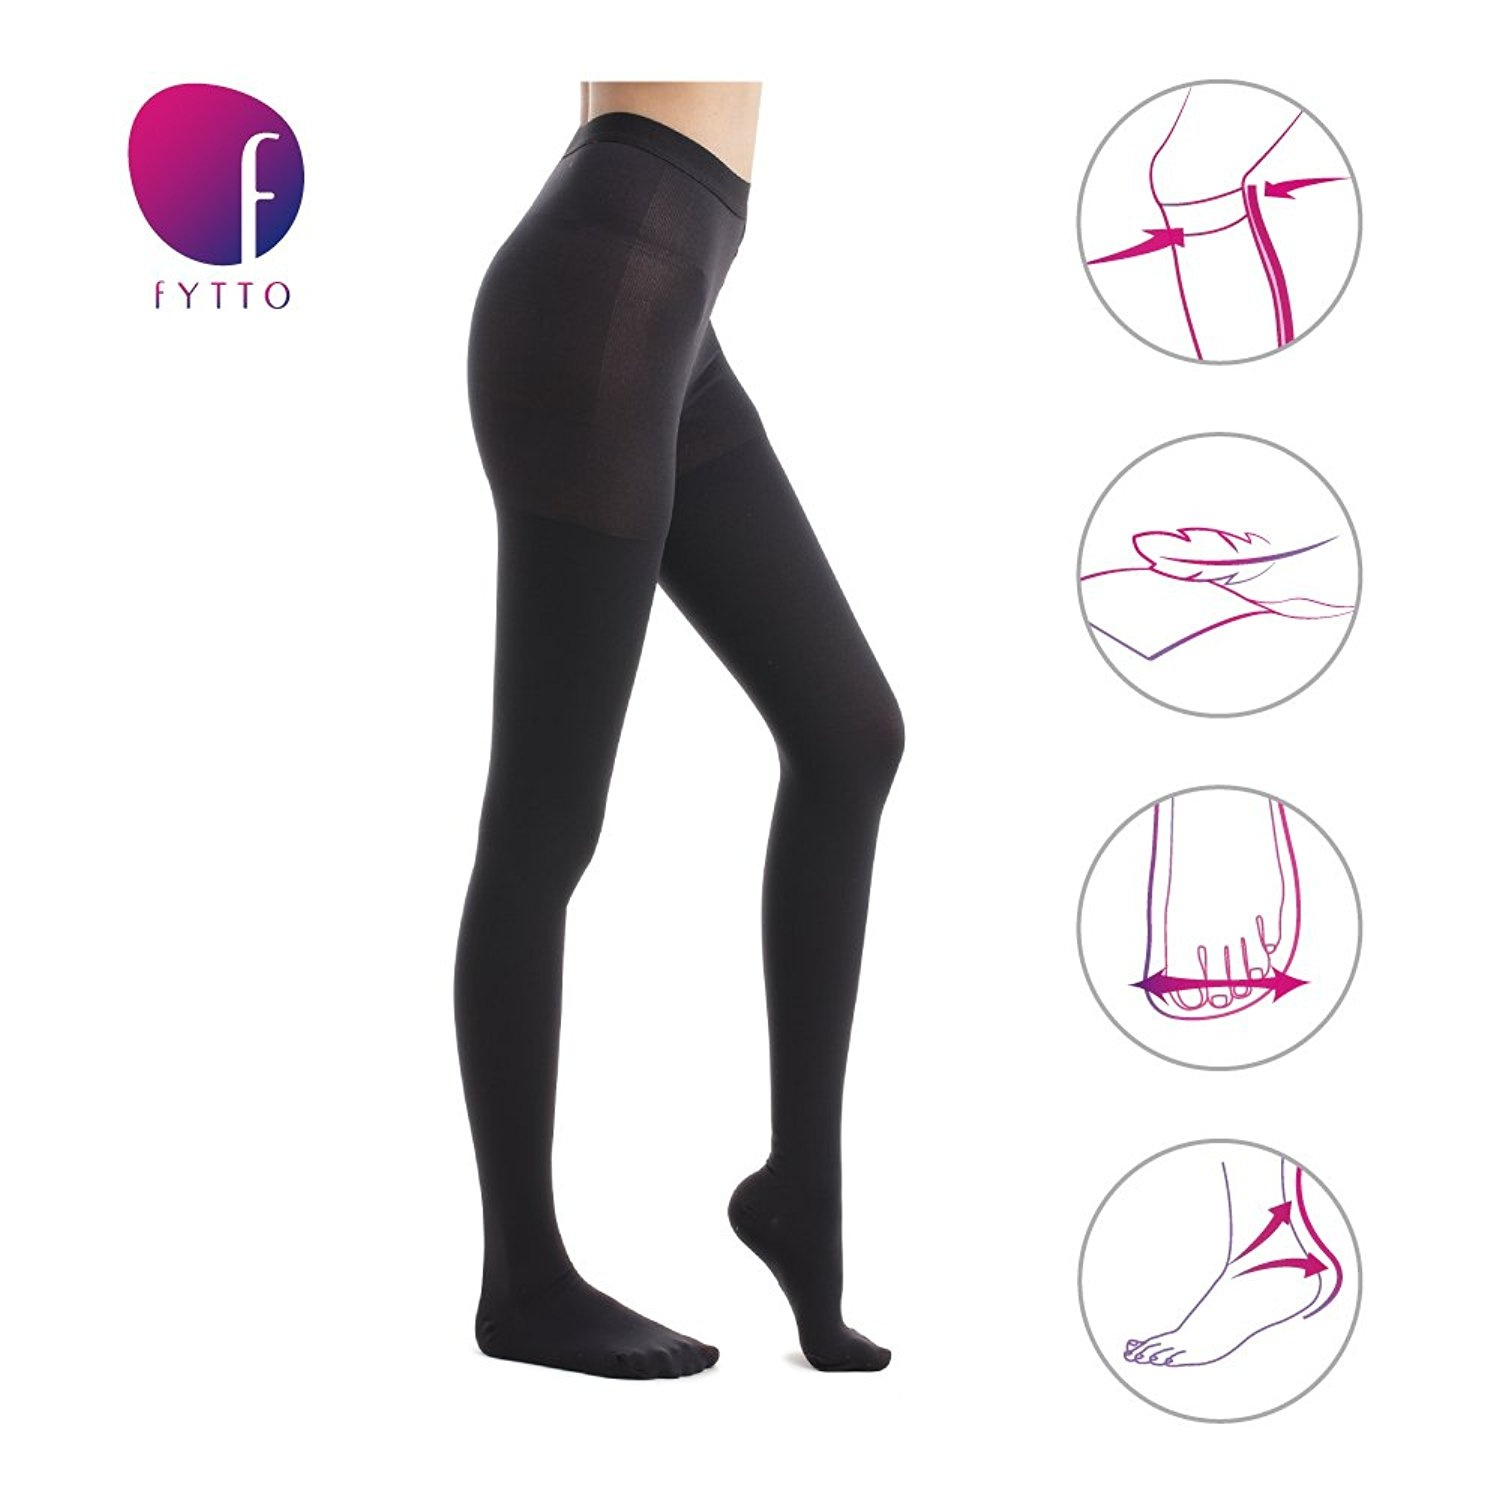 cdfd909dd8 Fytto Compression Sock Health: Buy Online from Fishpond.co.nz